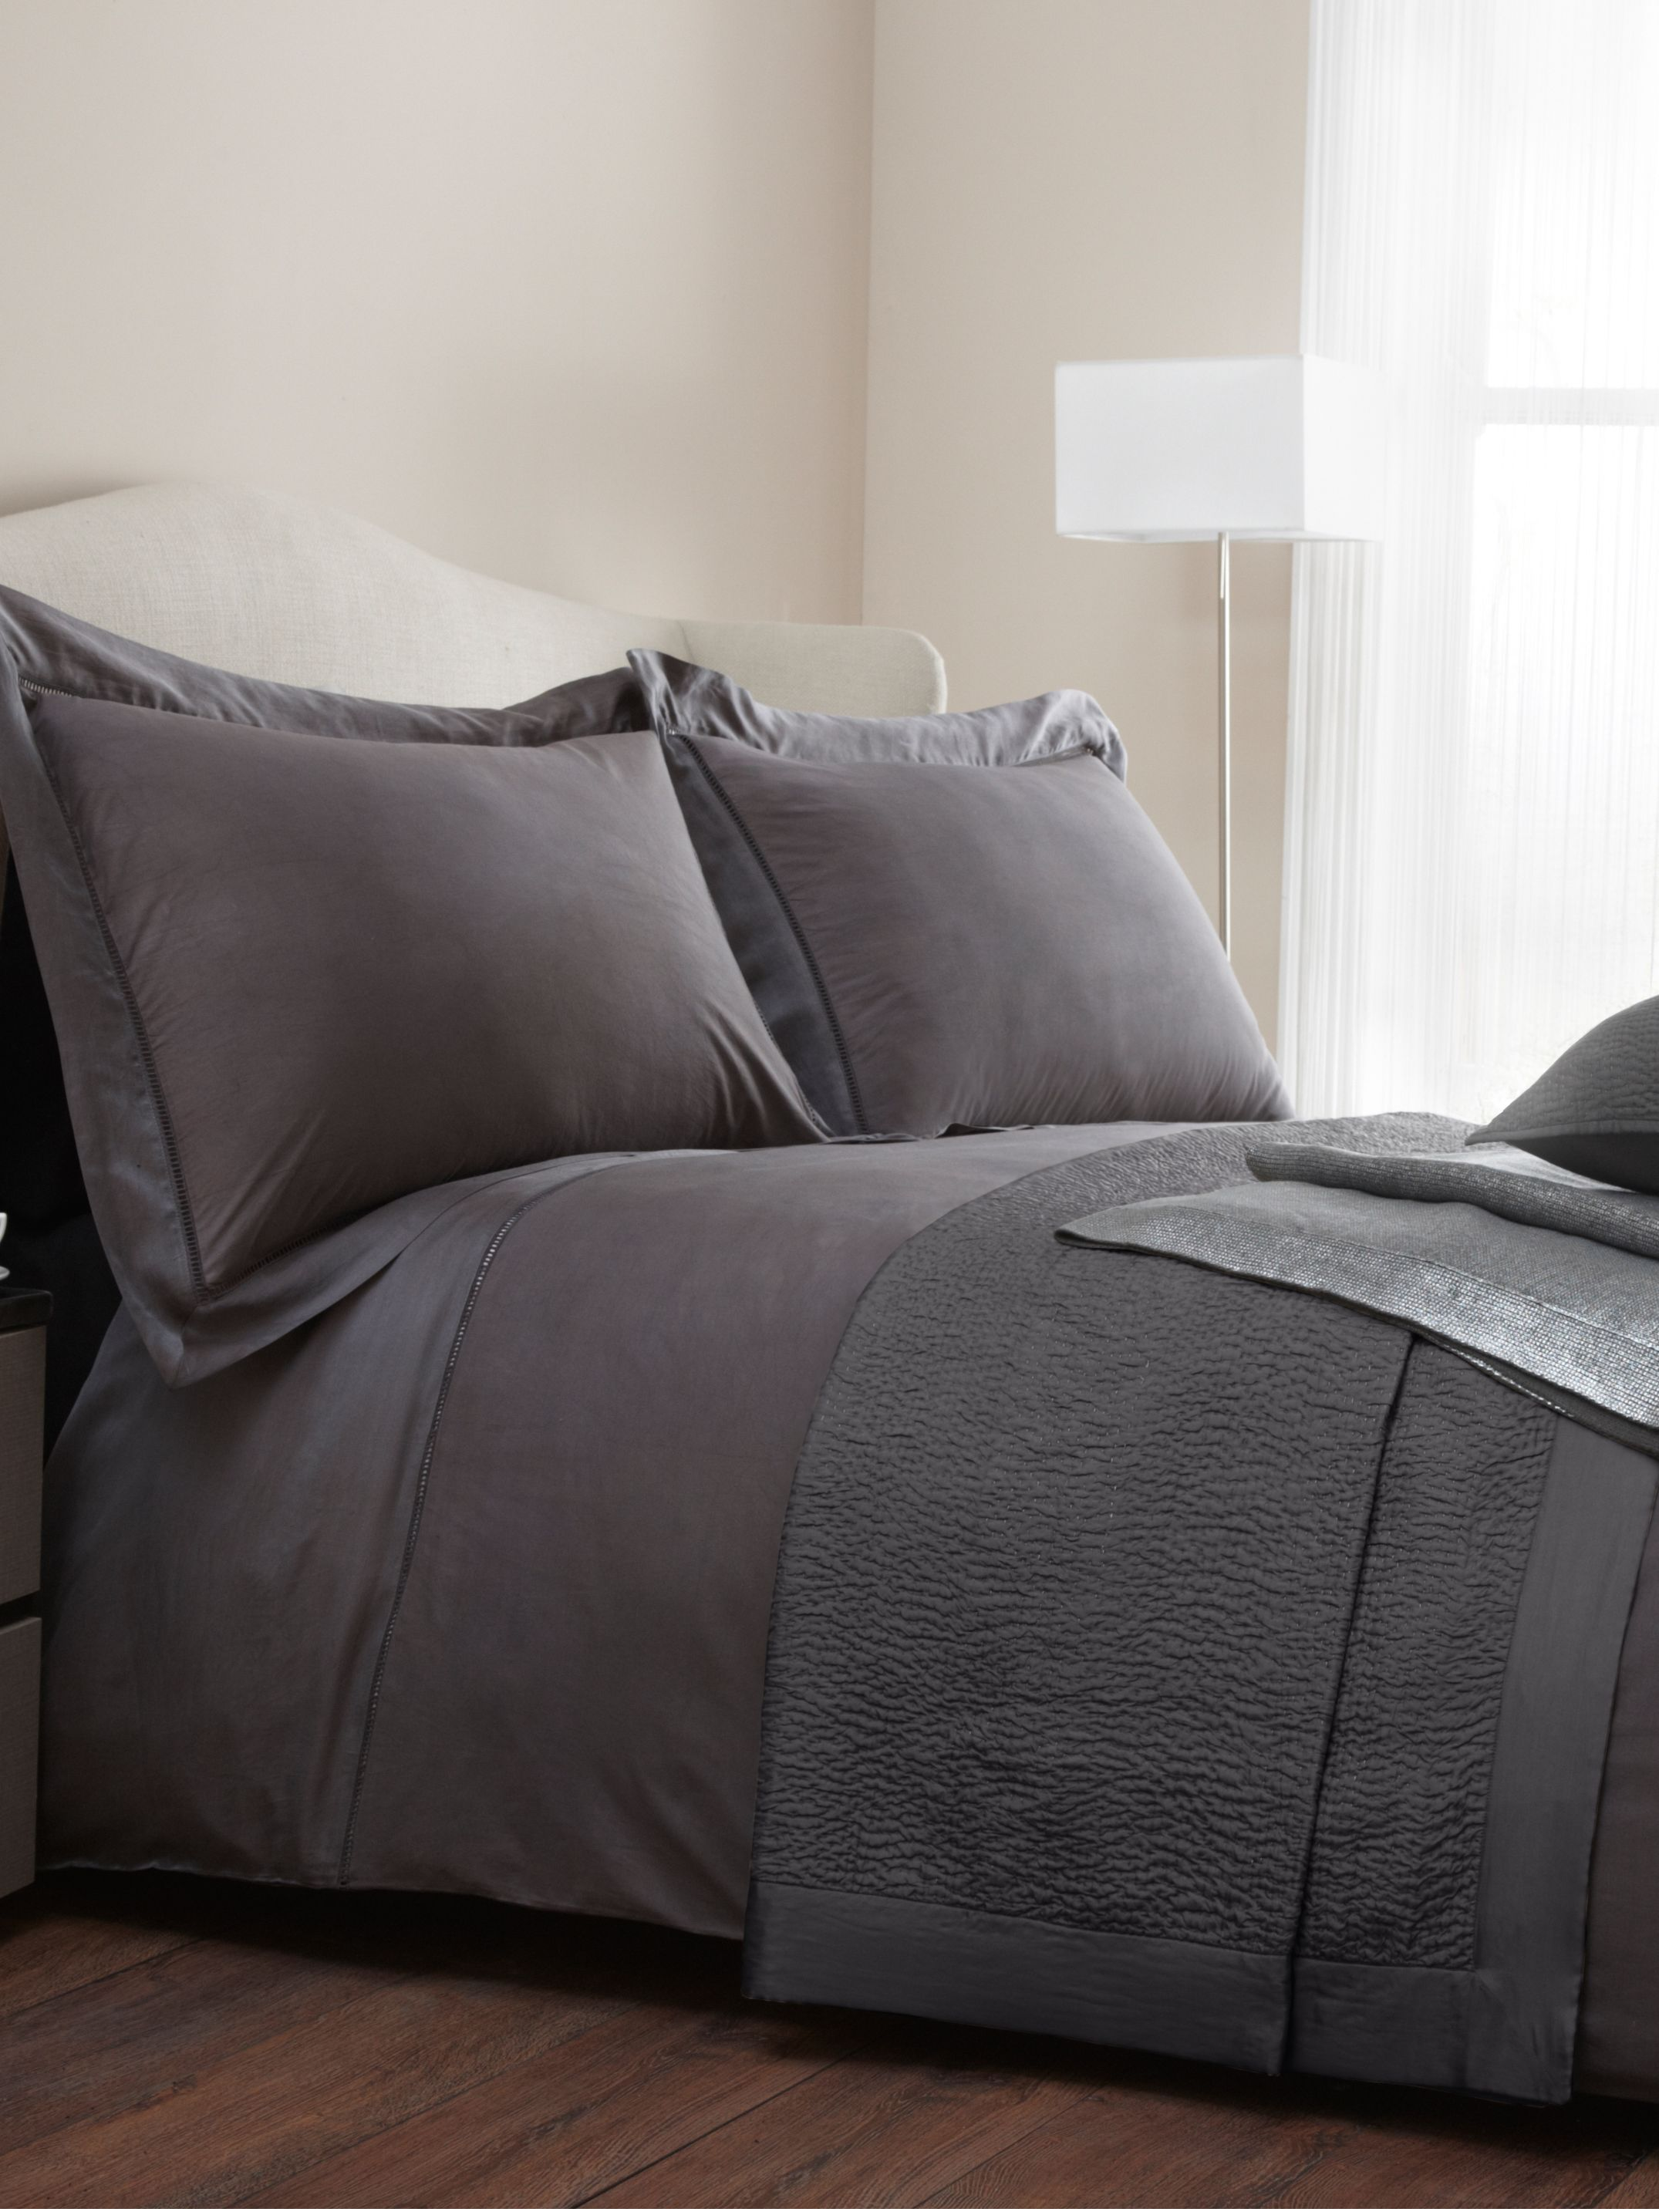 Berwick king duvet cover pewter